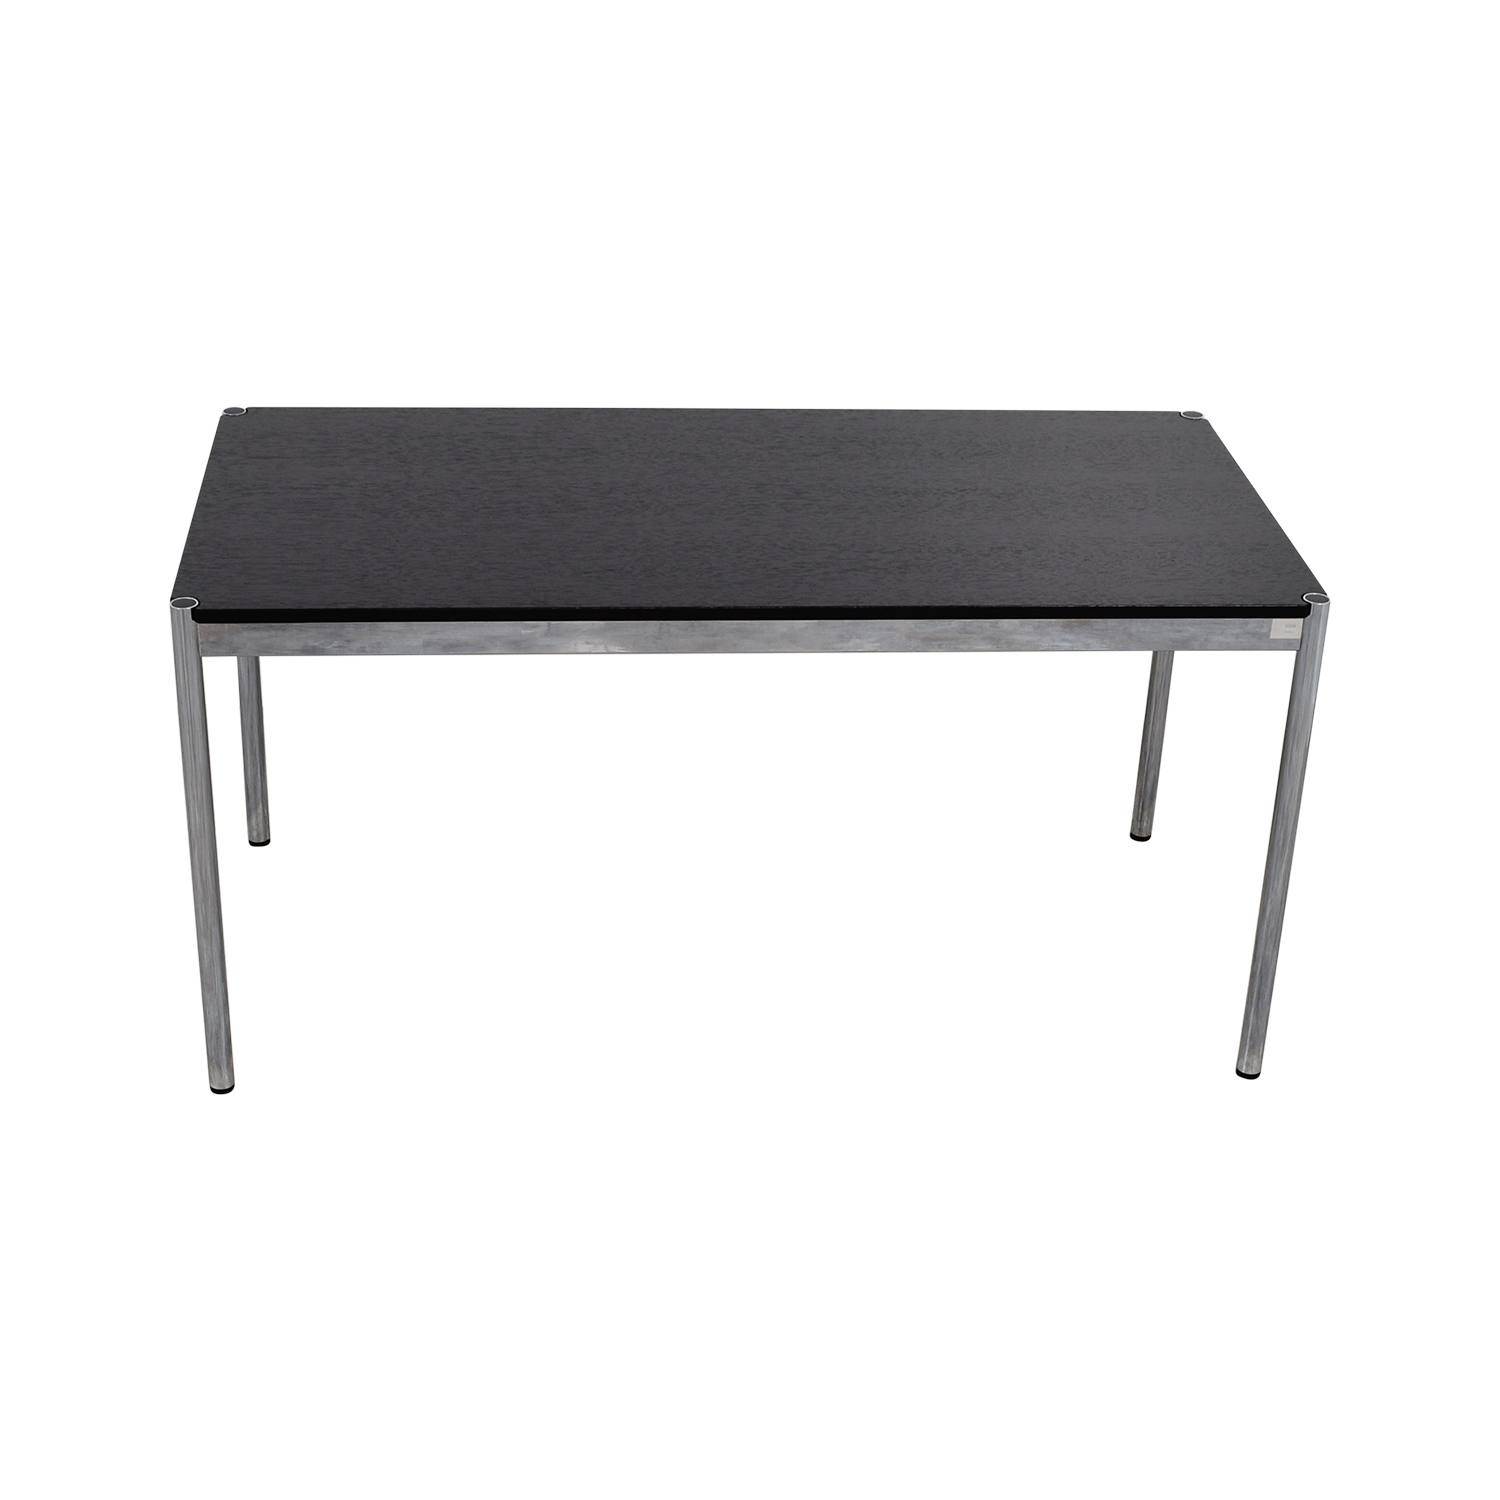 The Conran Shop The Conran Shop Haller Black and Chrome Dining Table nj